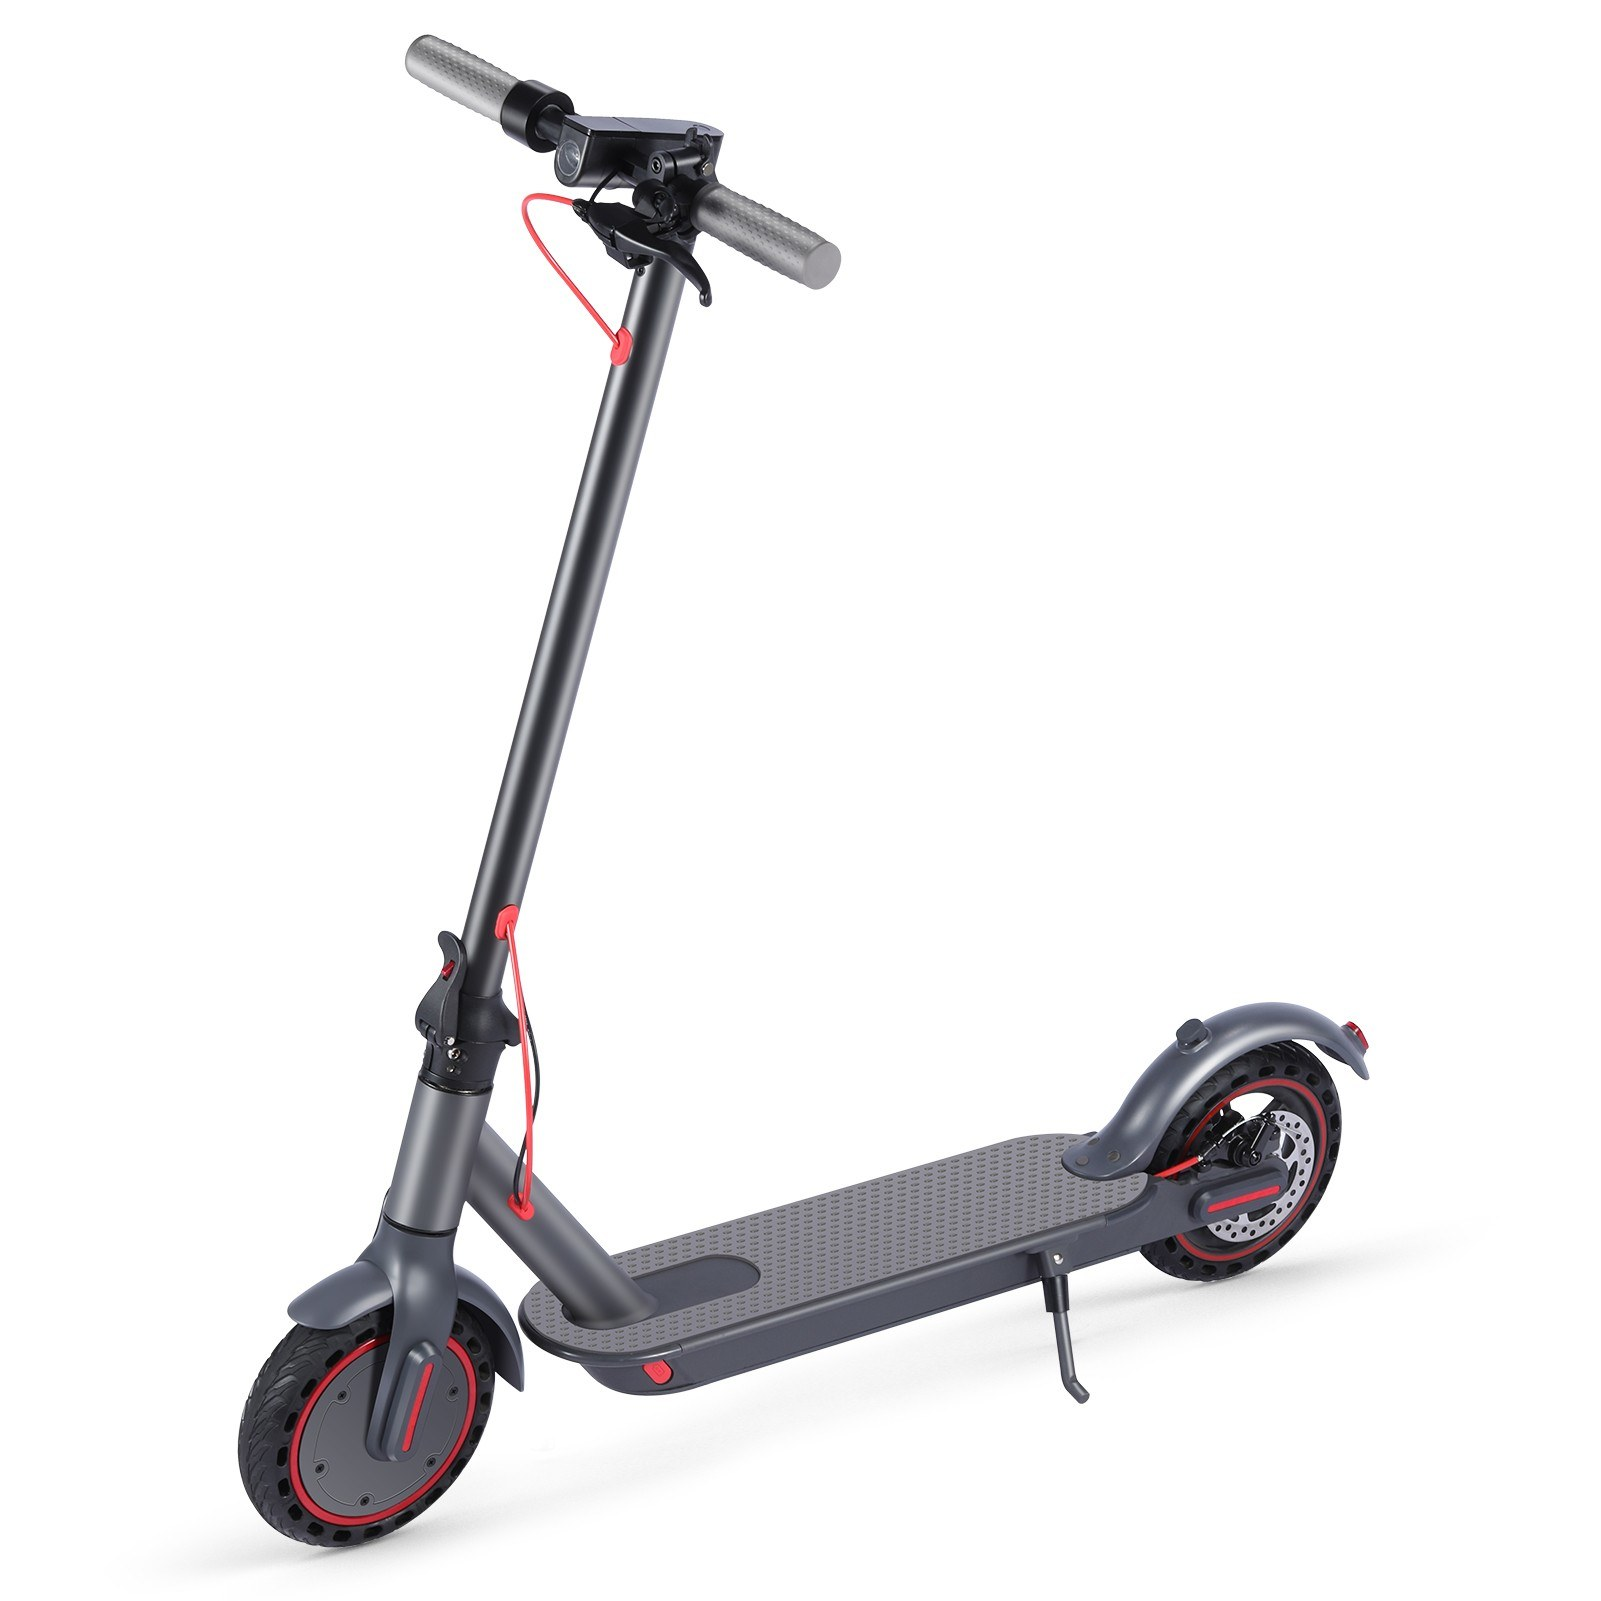 cafago.com - 39% OFF M1 8.5 Inch Two Wheel Folding Electric Scooter E Scooter,free shipping+$282.73